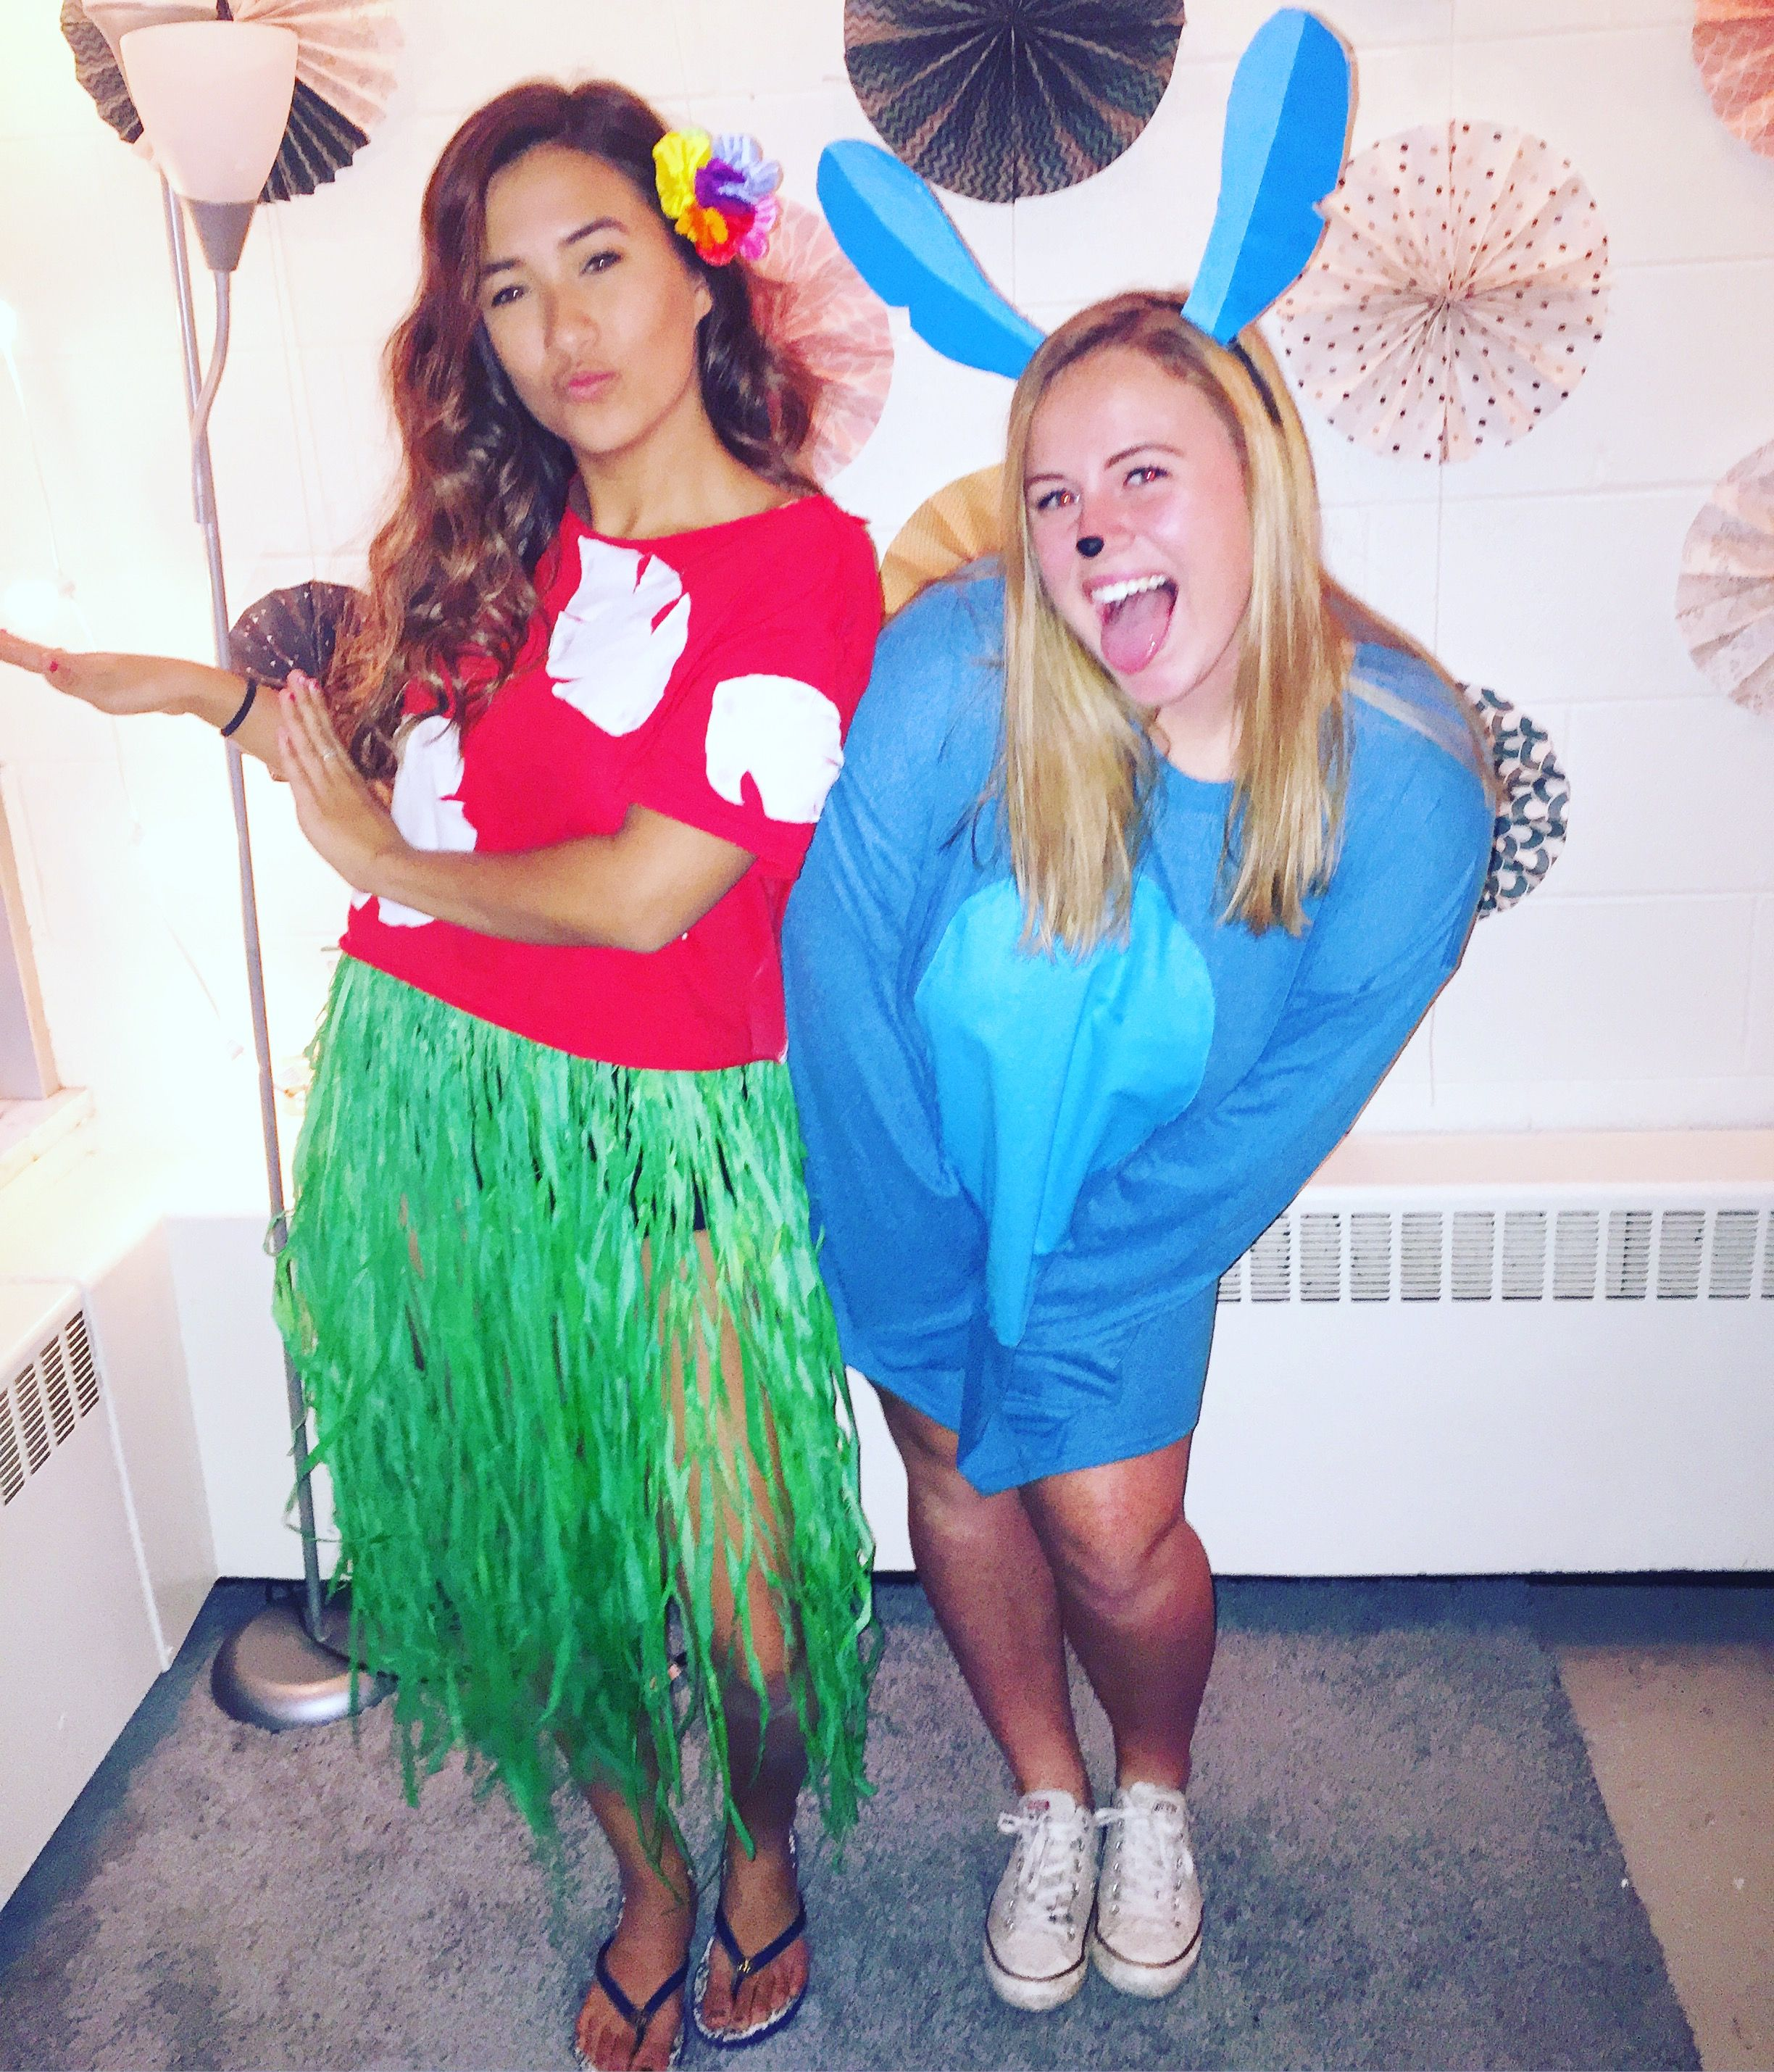 Lilo And Stitch Halloween Costume Diy Stitch Halloween Costume Diy Halloween Costumes For Women Cute Halloween Costumes